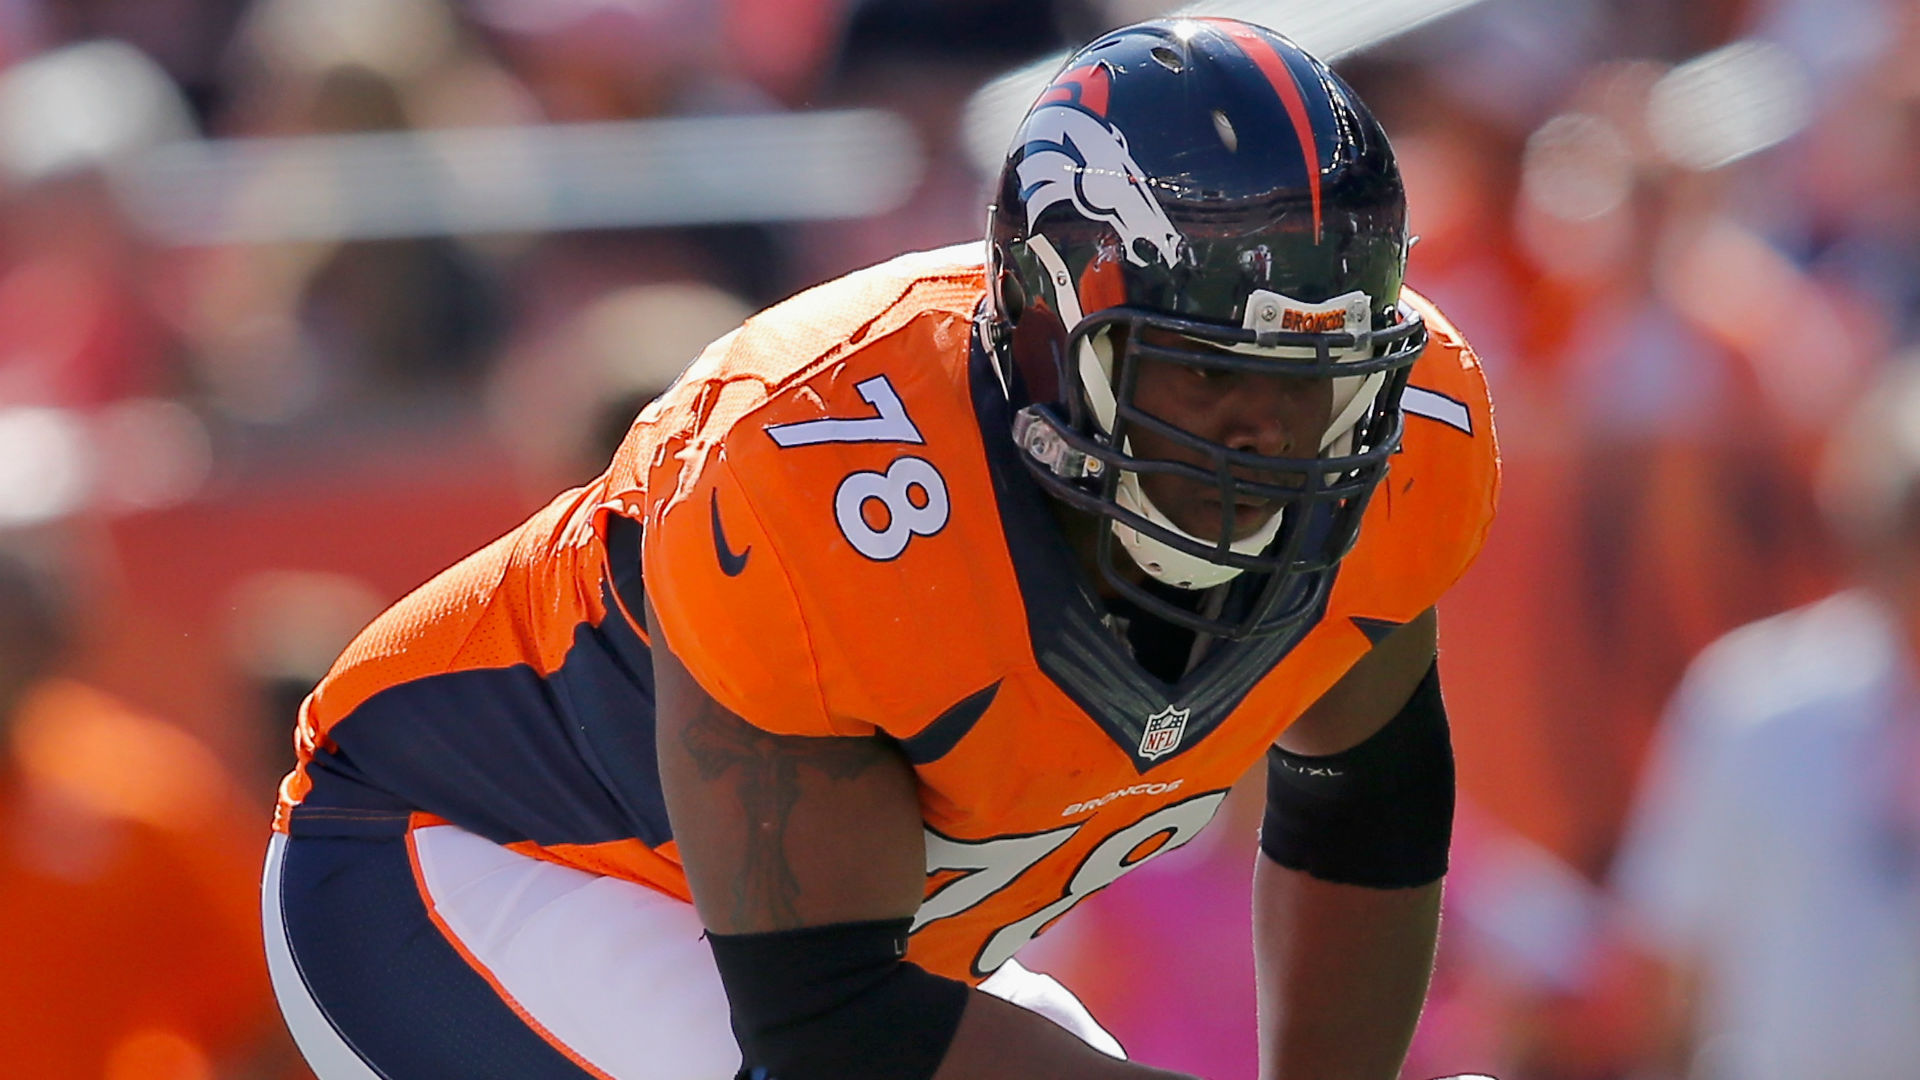 Veteran Left Tackle Ryan Clady Announces Retirement